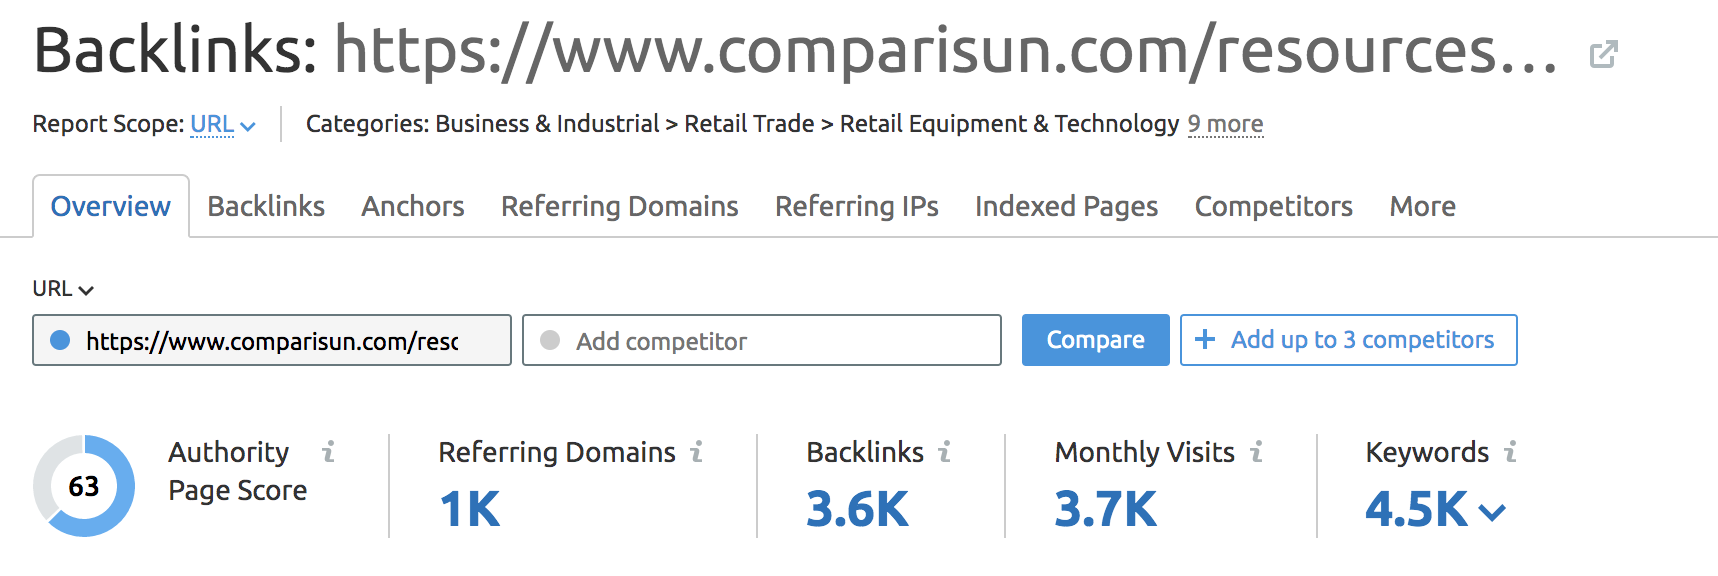 Comparisun backlinks